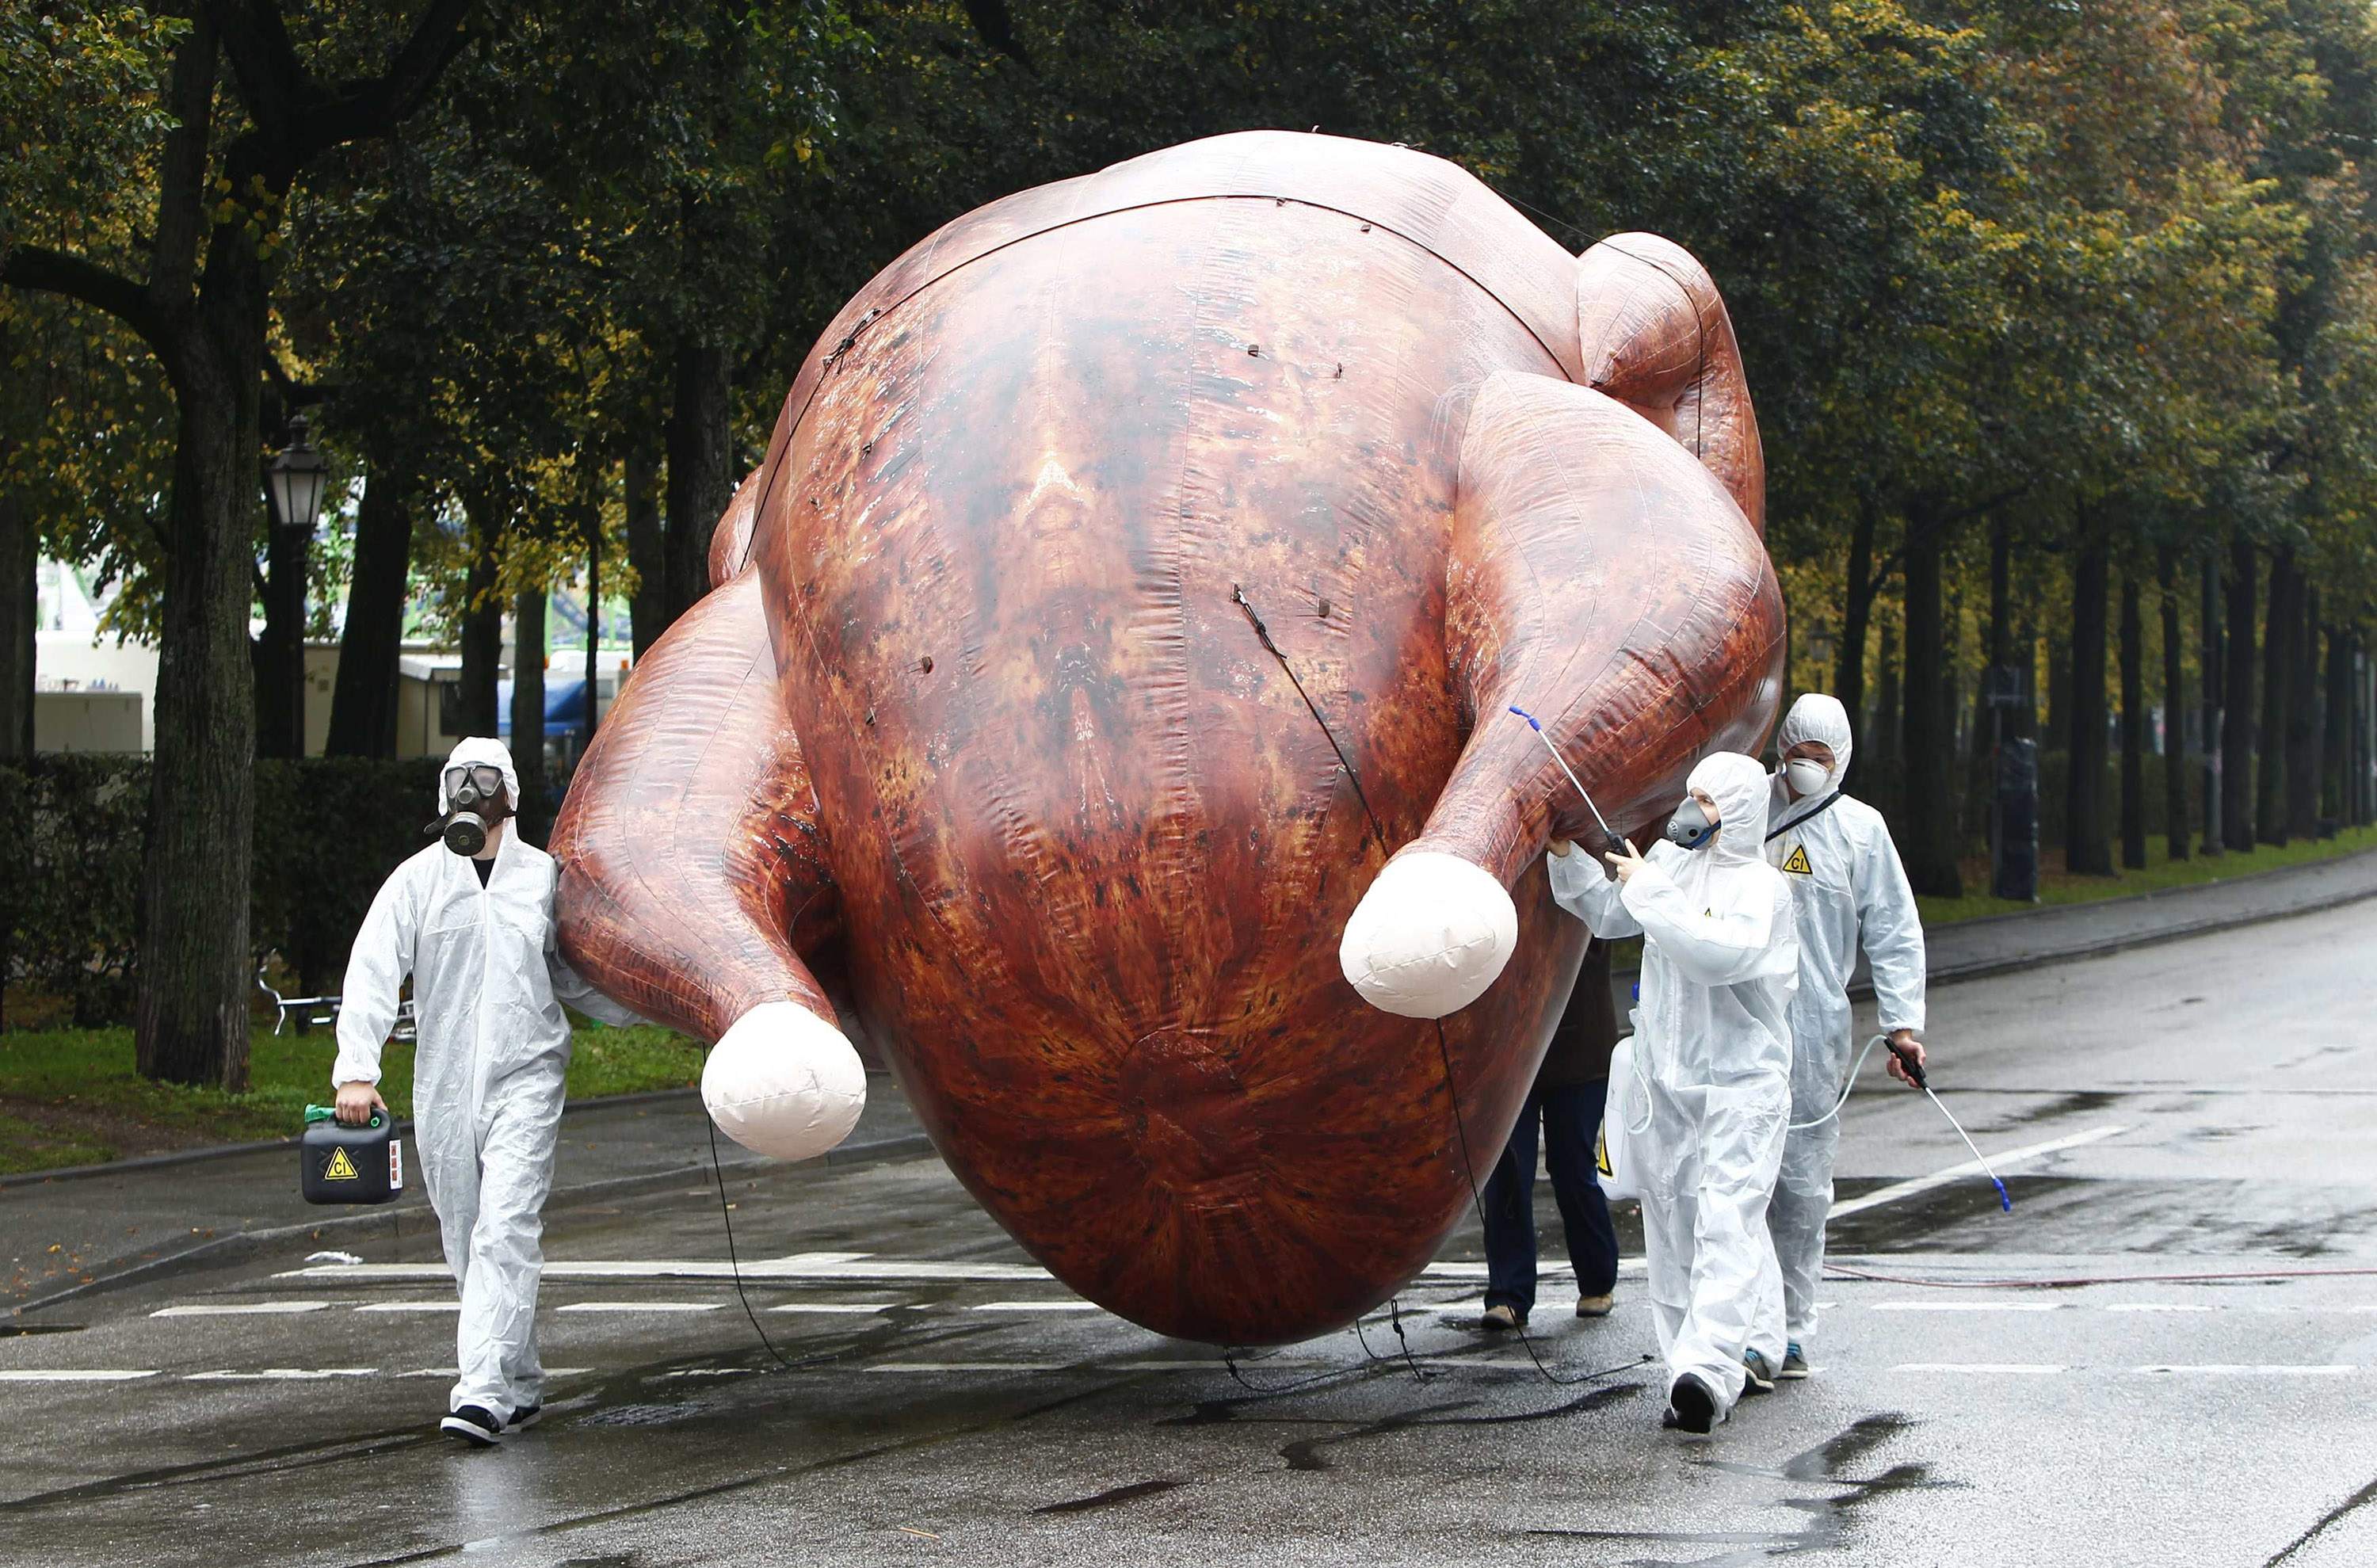 Environmental activists carry a giant inflatable chicken as they demonstrate against 'chlorine chickens' near the Oktoberfest grounds in Munich on Oct. 1, 2014.